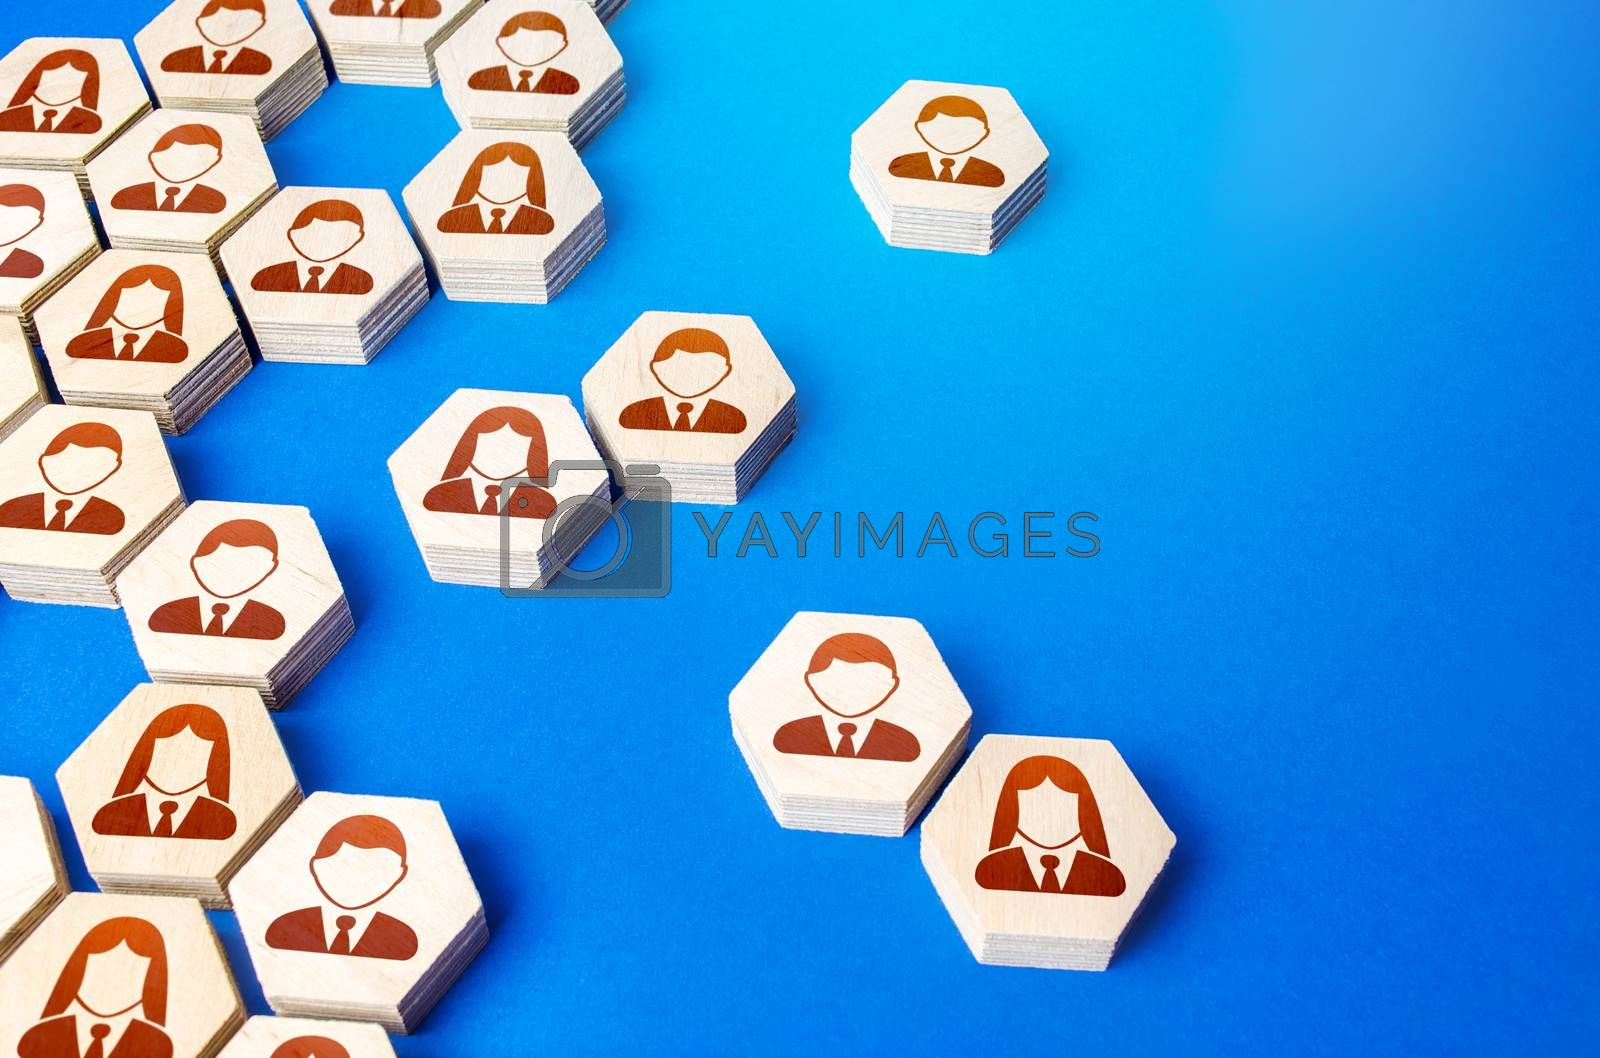 Heterogeneous social structure of employee hexagons. Recruiting and personnel management. Process of creating a business single group hierarchy or company fall apart. Cooperation. Strength is in unity